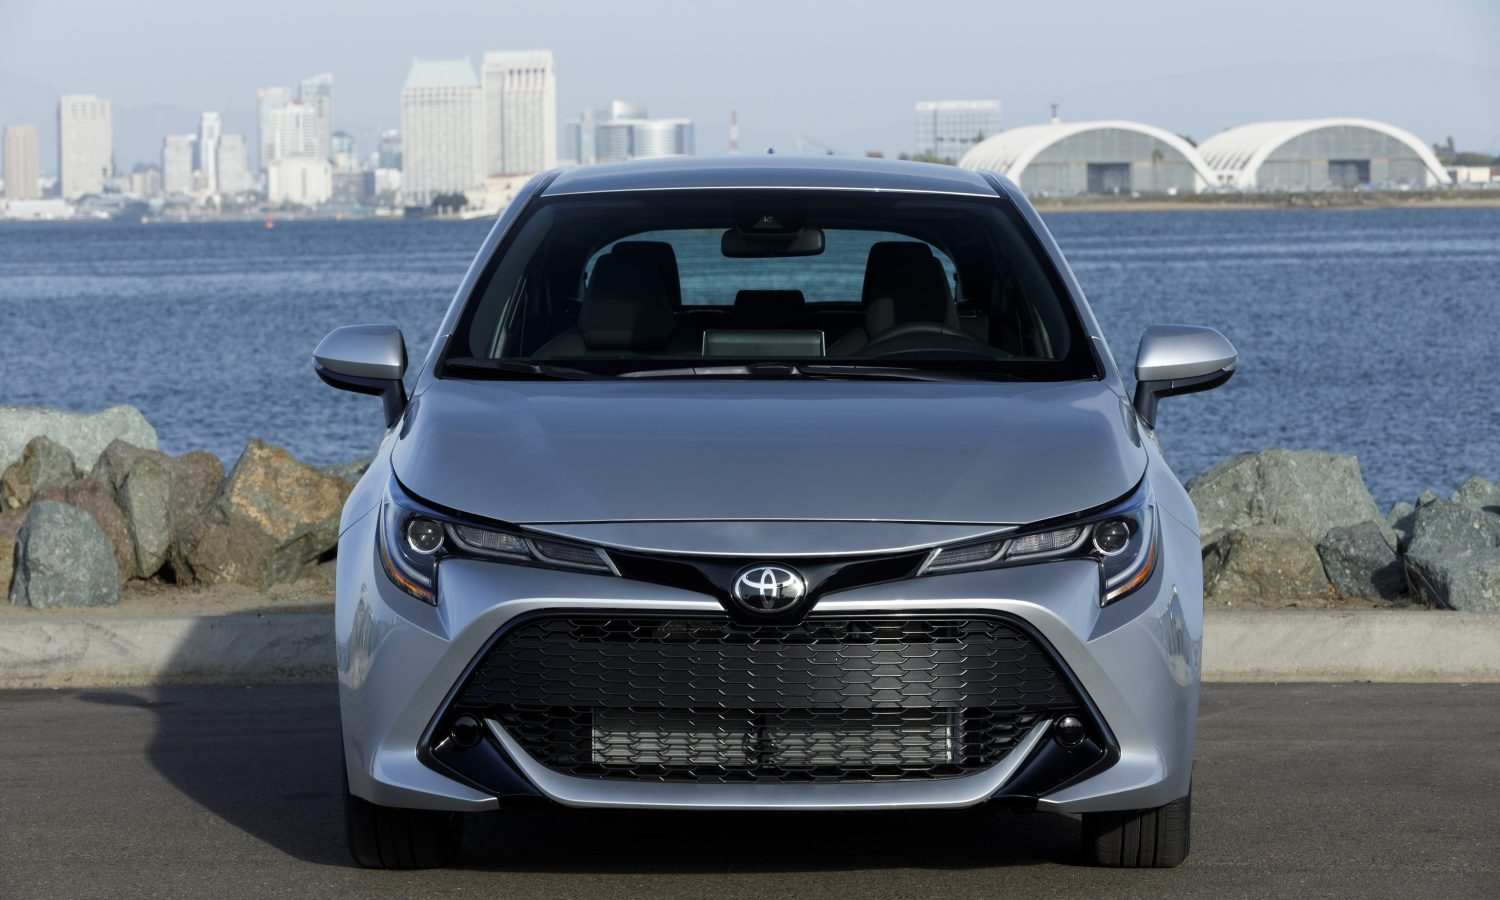 Toyota Corolla Hatchback Enters Sophomore Year with Dynamic New Style Choices, Enhanced Multimedia and Even More Space